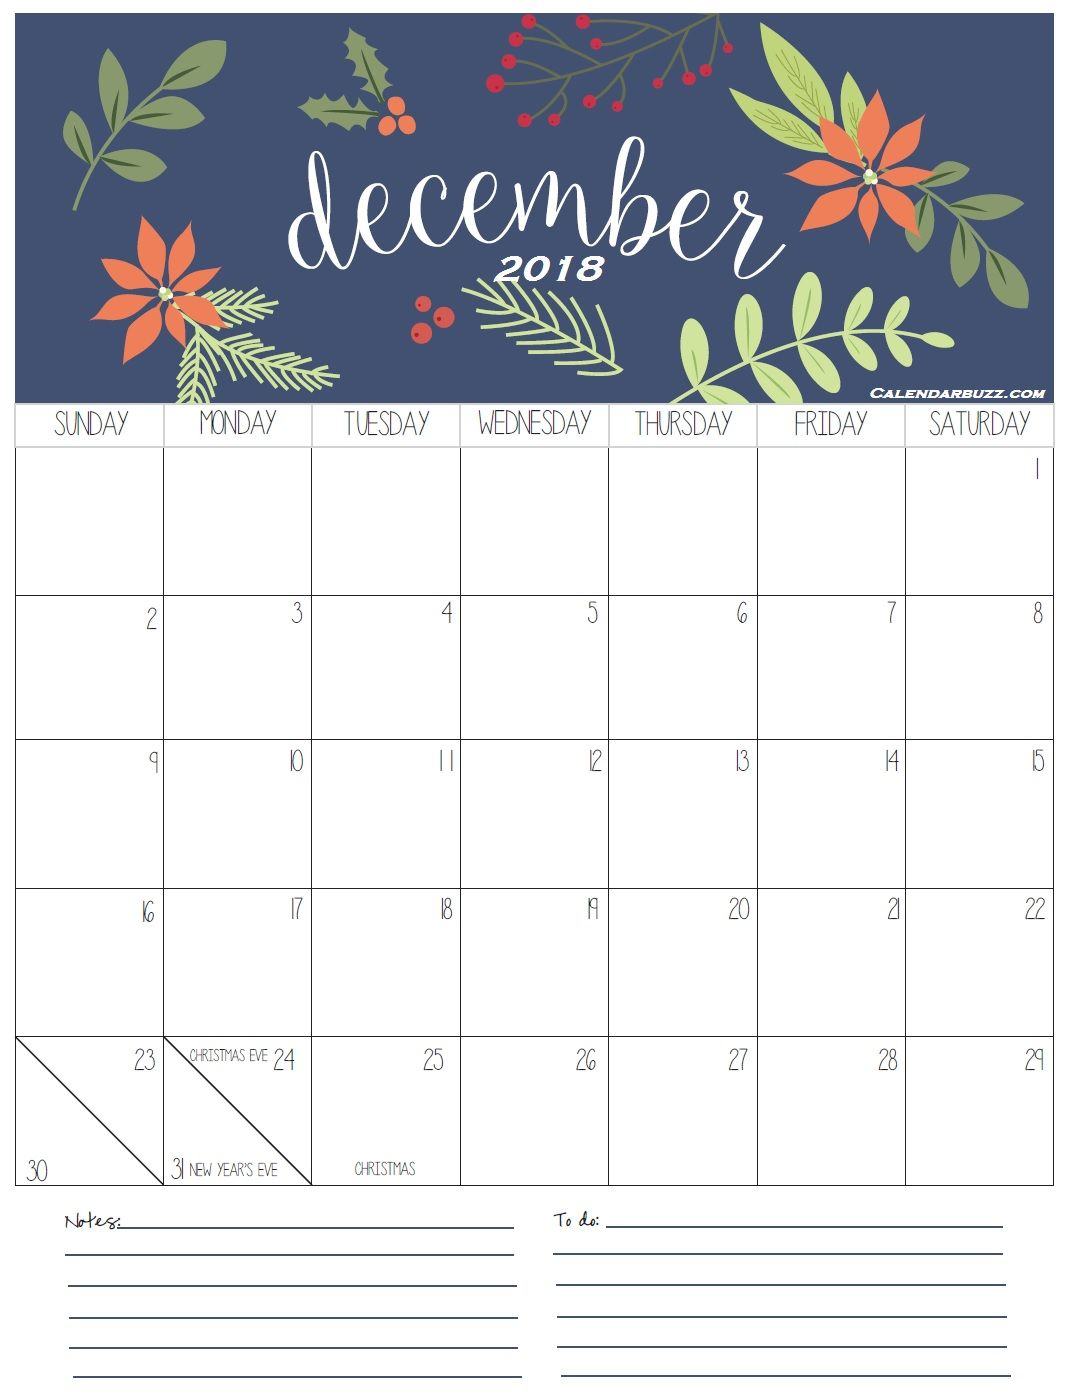 Printable Calendar December 2019 With Holidays And Cute Free Printable December 2018 Calendar | Calendars | December calendar, 2018